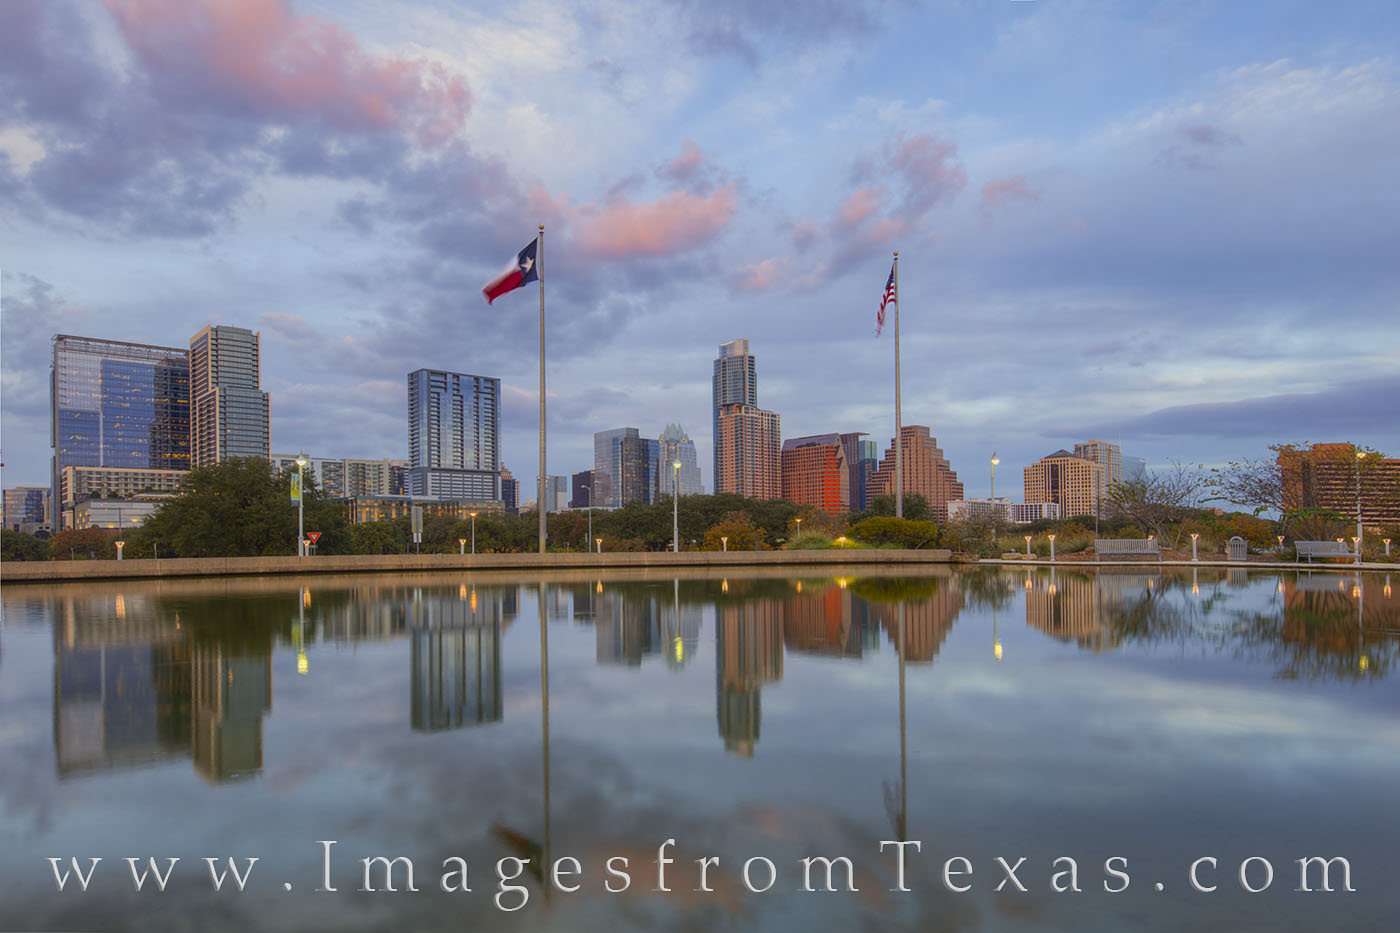 austin skyline, austin evening, long center, reflection, downtown austin, austin texas, austin images, austonian, austin, photo